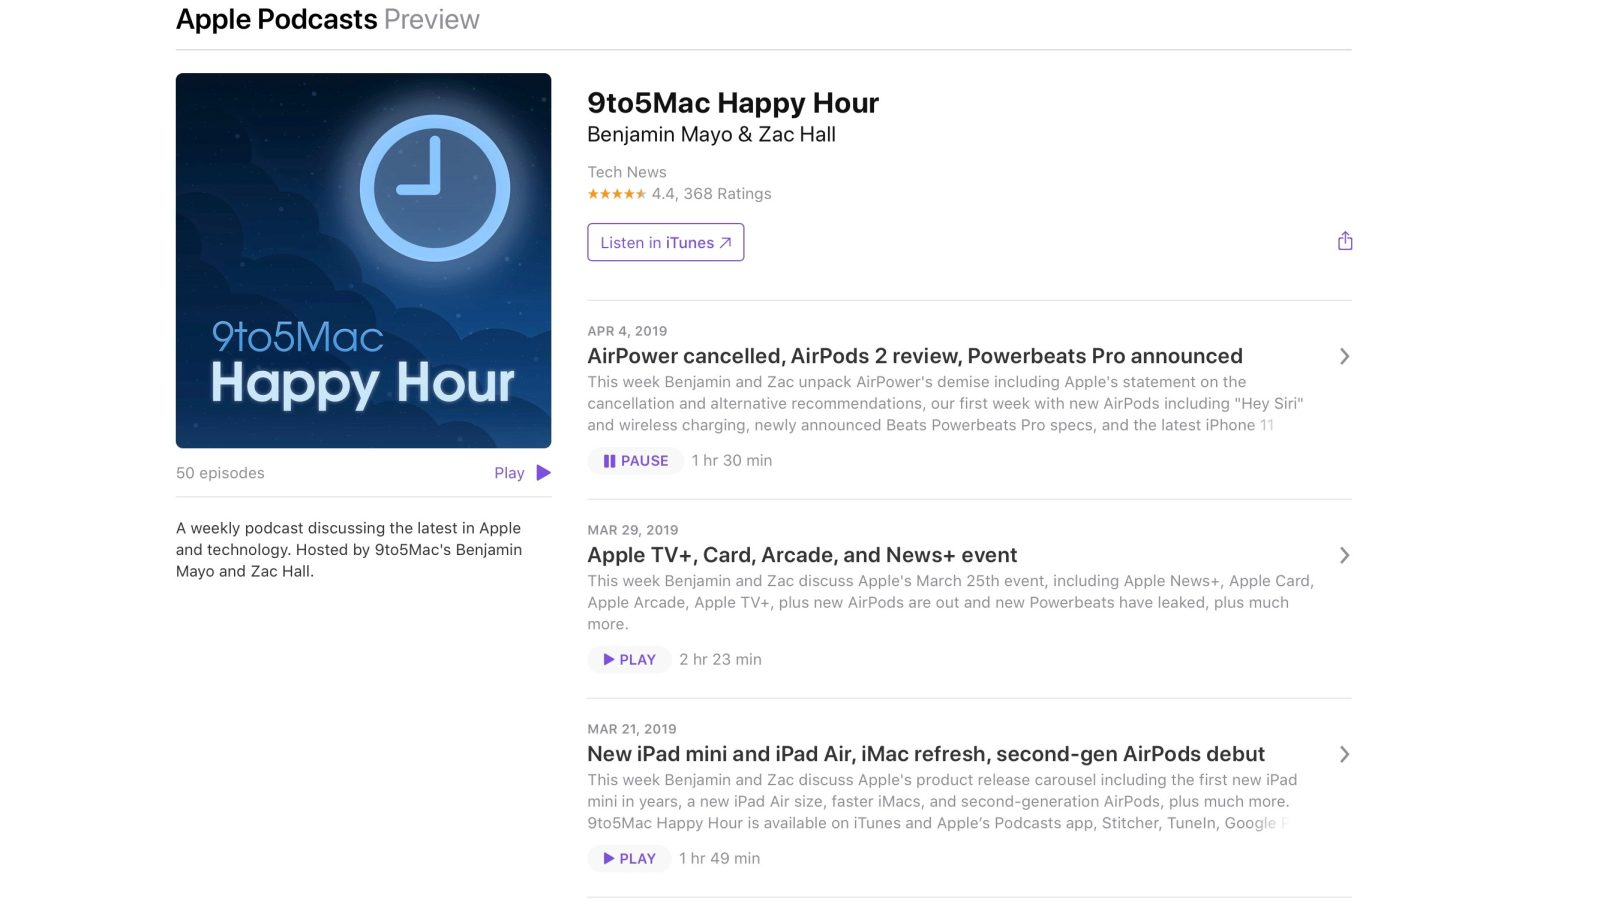 Techmeme: Apple Podcasts on the web gets an overhaul, with a new